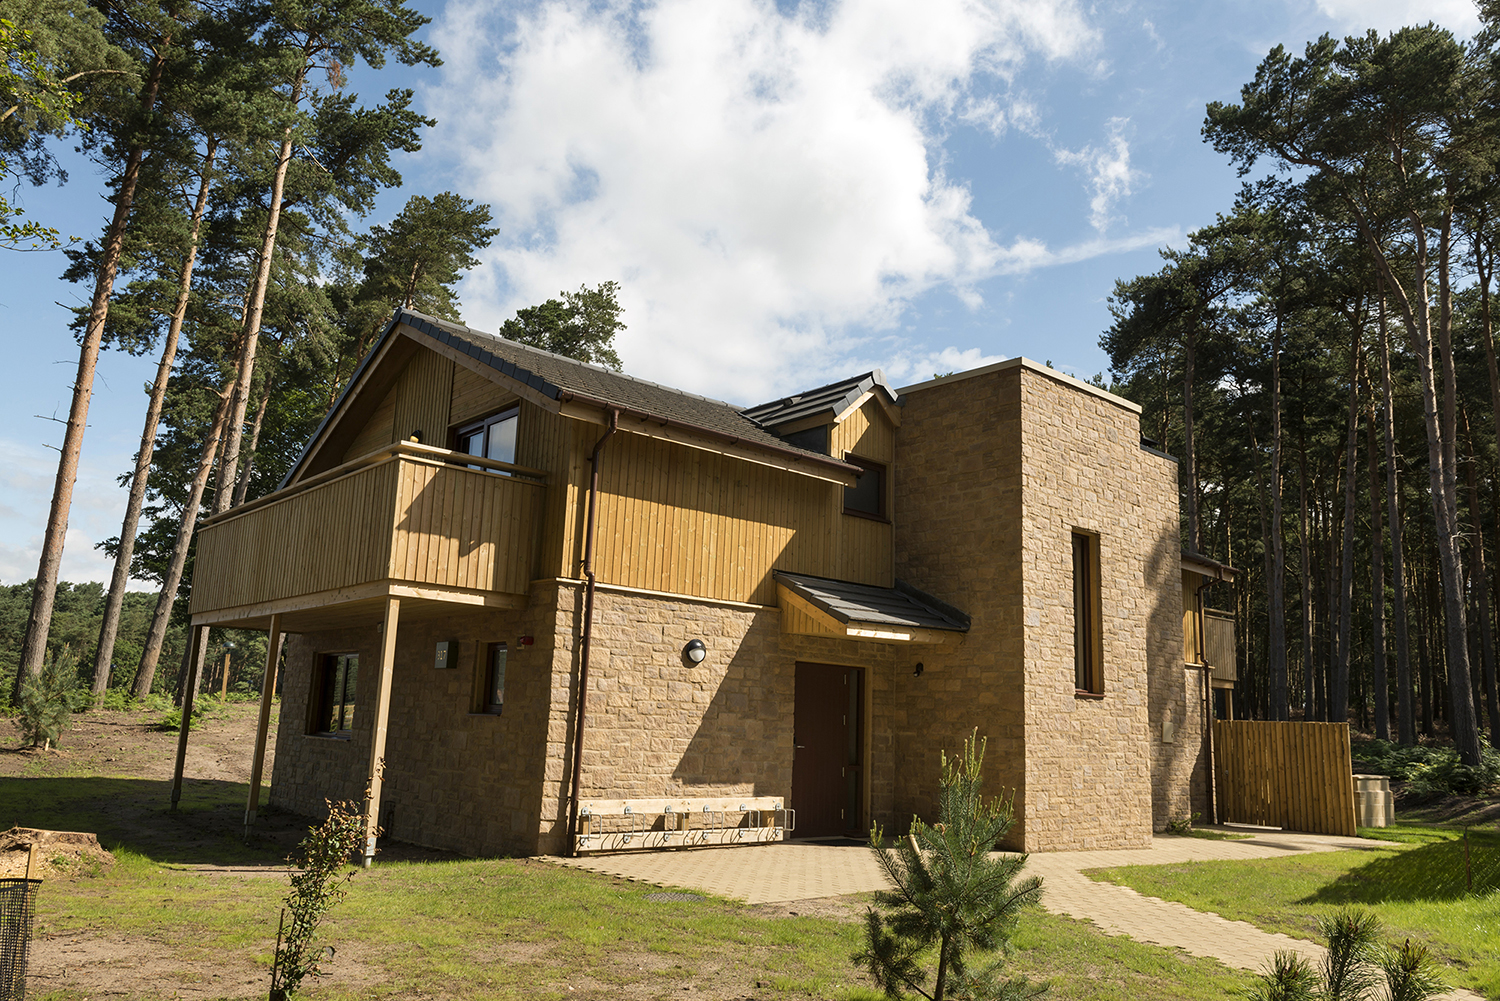 Sustainable stone blocks for picturesque Center Parcs project